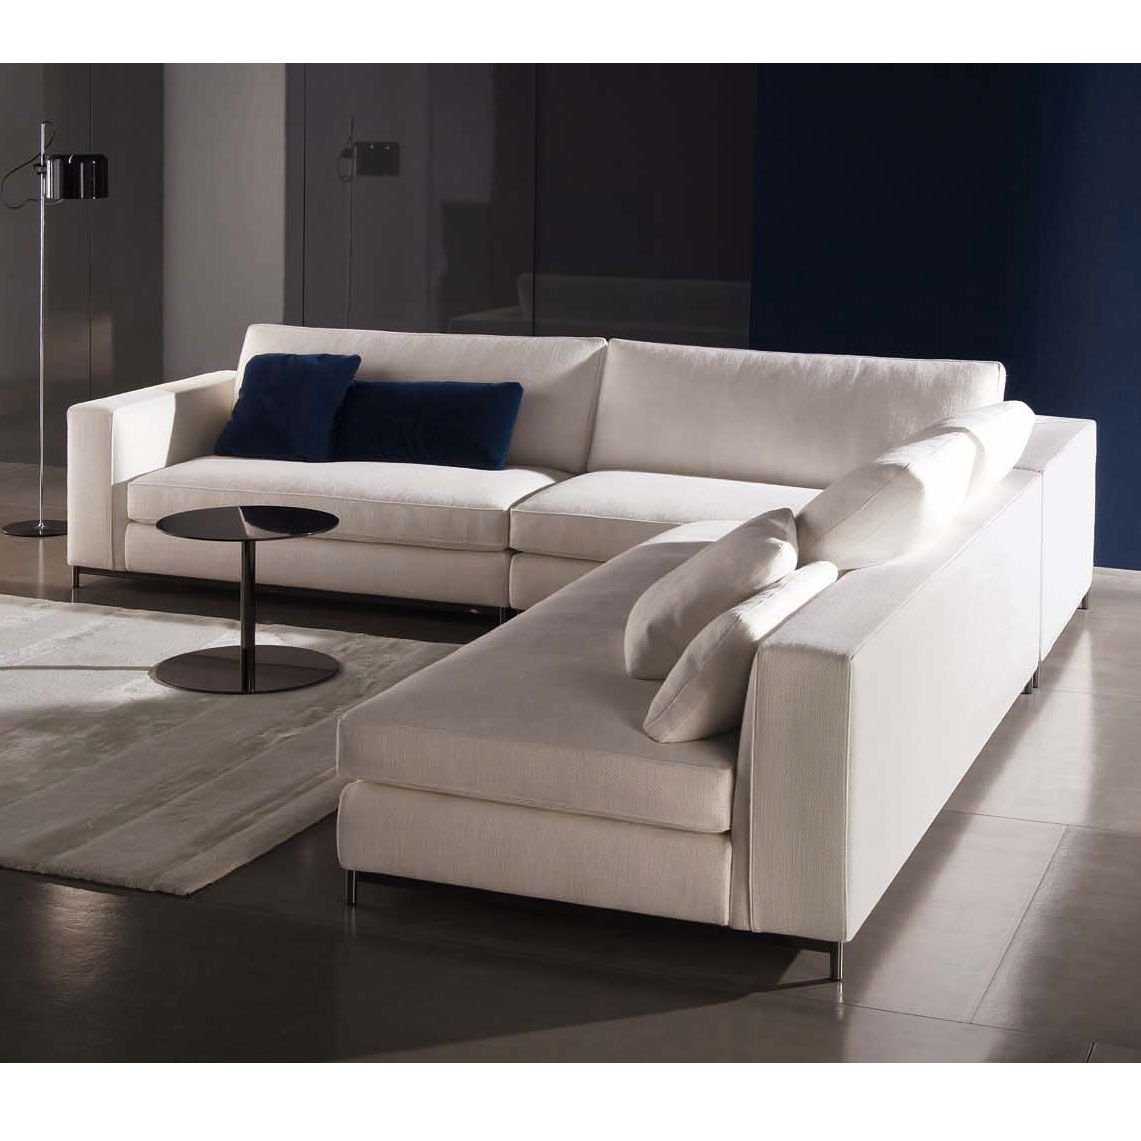 Smart Sofa Designs Cushion Cover Albers Sectional Simple And Contemporary